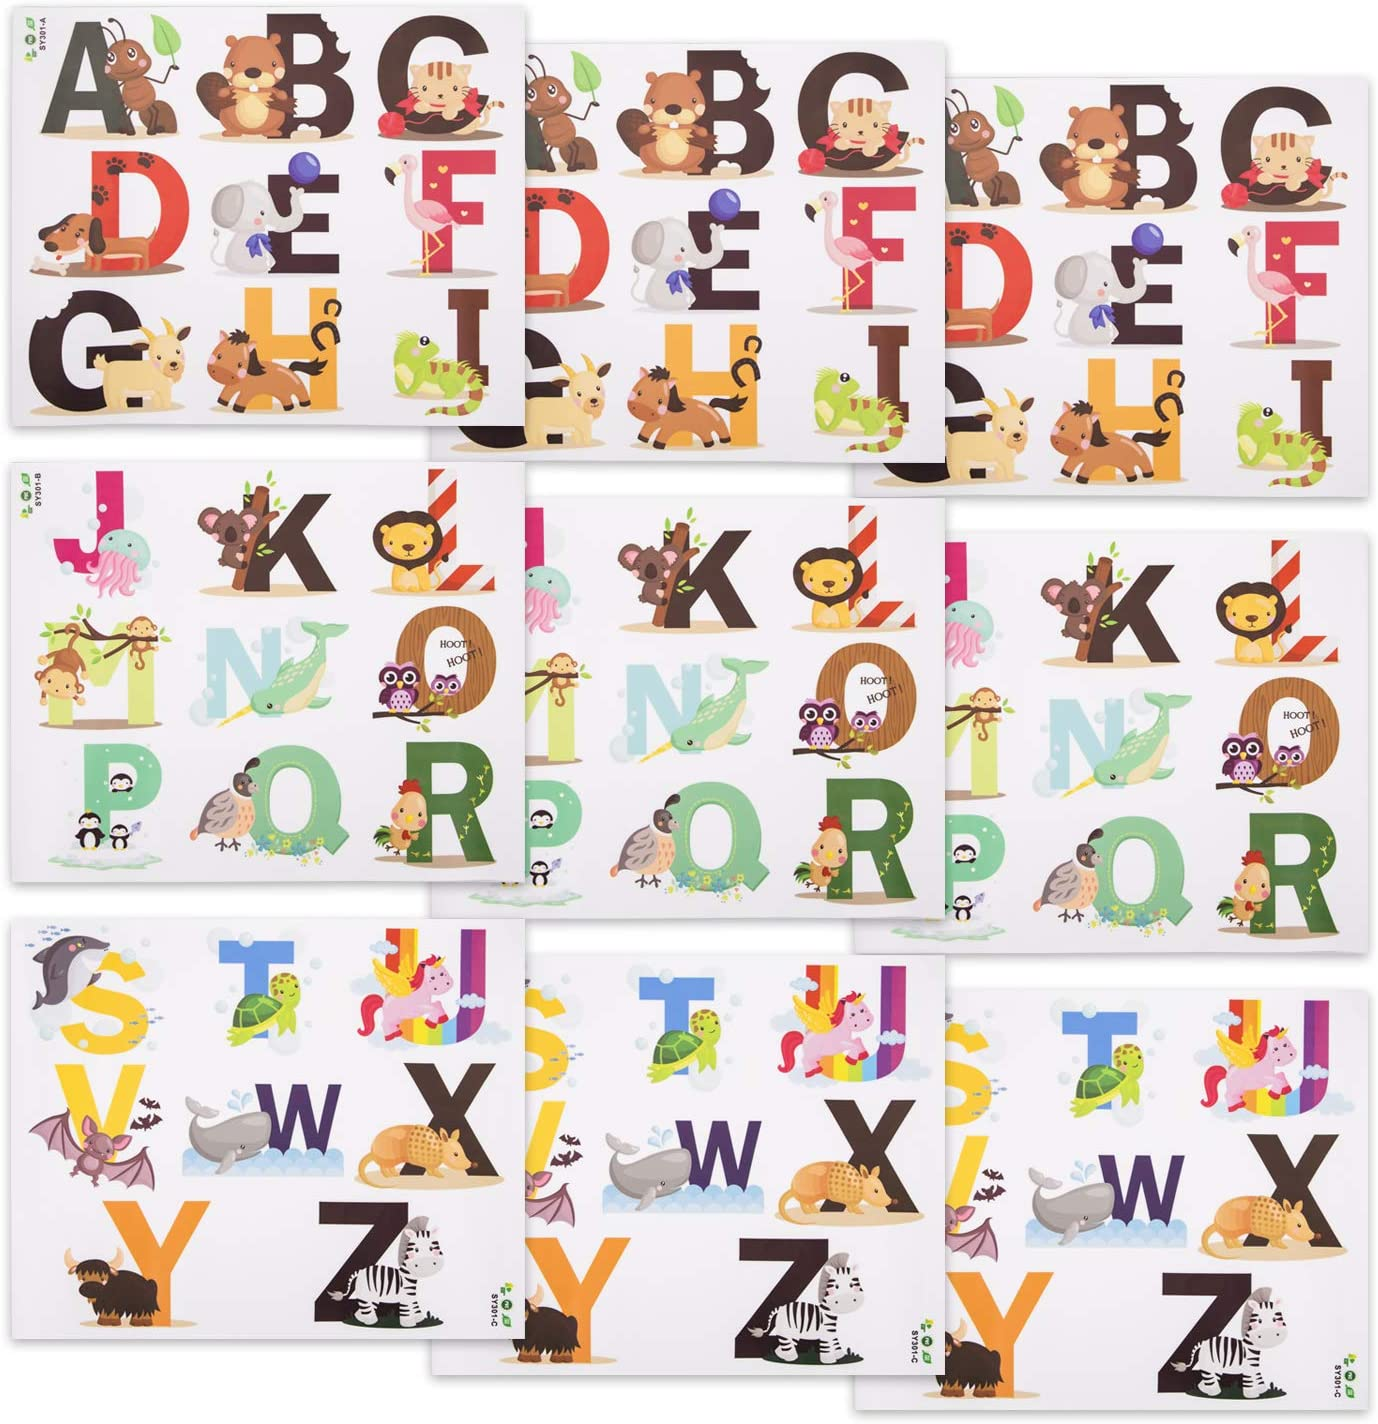 Suwimut 78 Pieces Alphabet Wall Decals, Removable Wall Stickers Peel and Stick for Kids Bedroom Living Room Decor